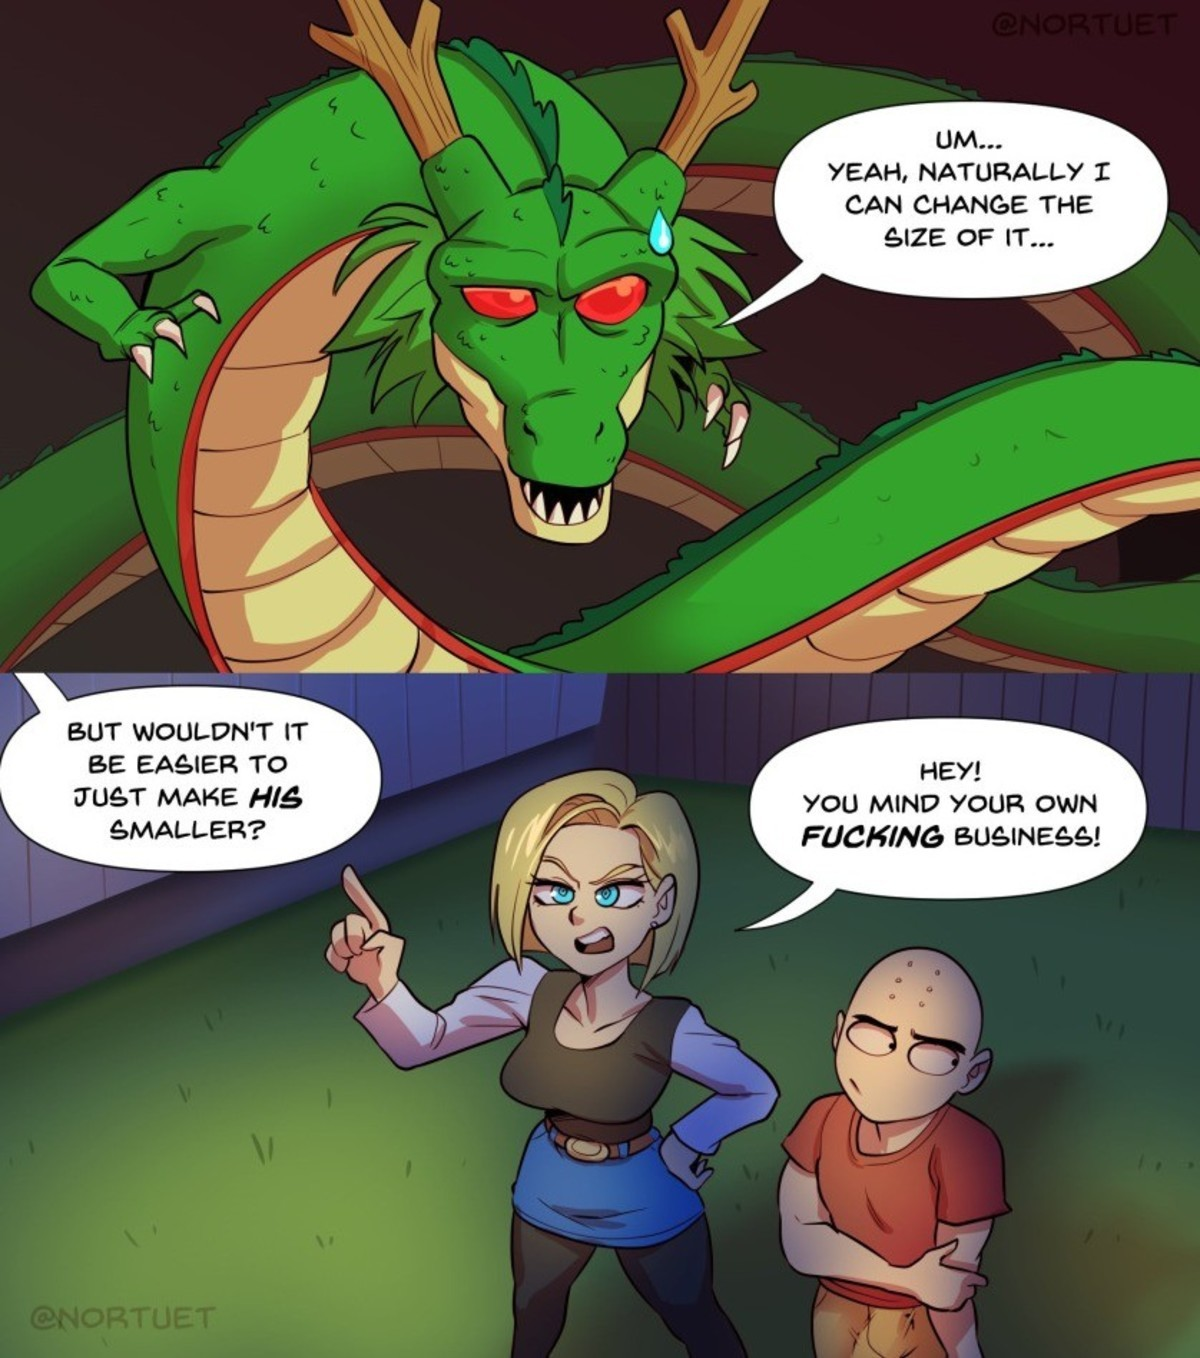 uncovered Sardine. .. Android 18 wished that she had a larger penis